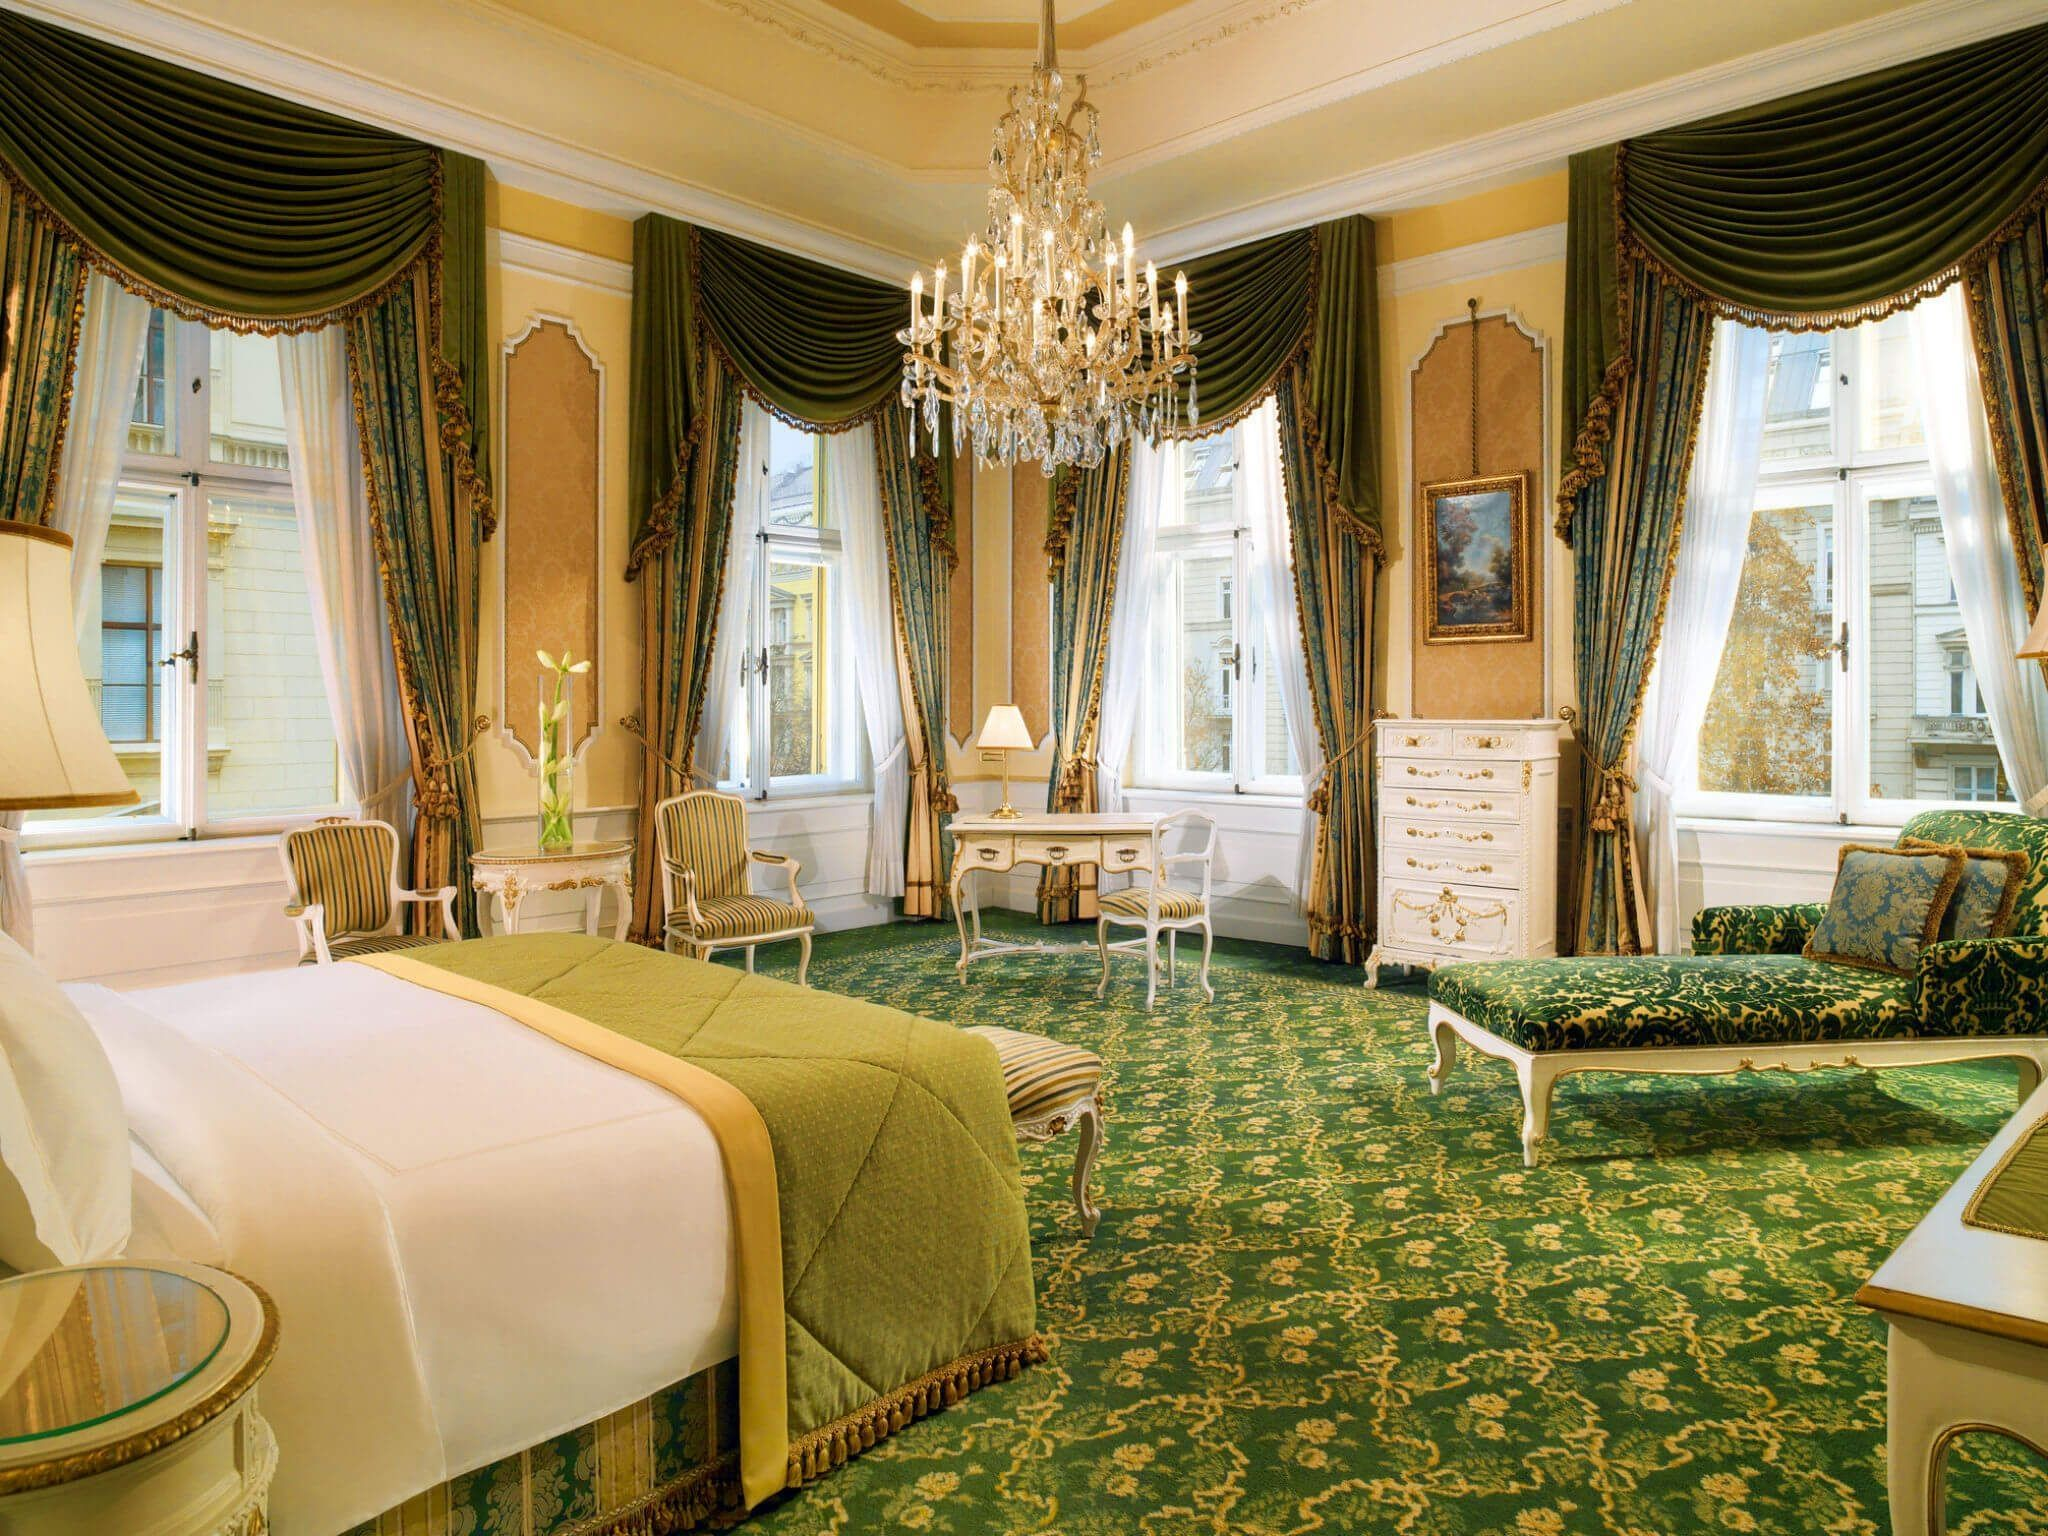 Luxury Hotel Vienna Discover The Suites Of Hotel Imperial